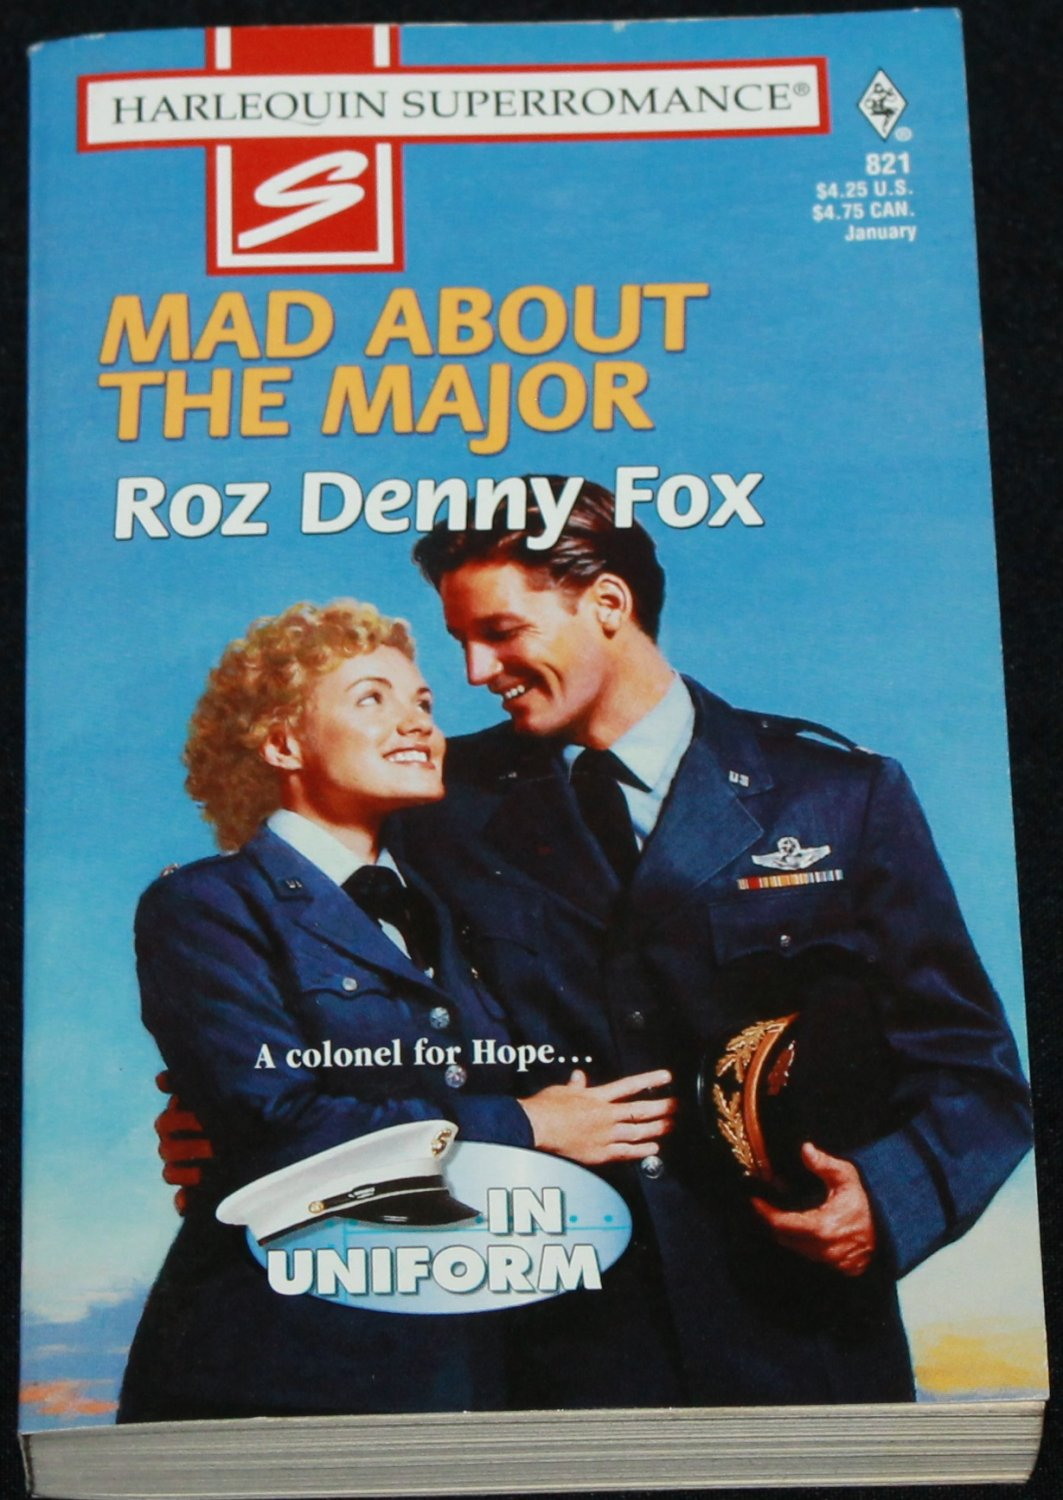 Mad About the Major - Harlequin romance book - passion romantic love story paperback book